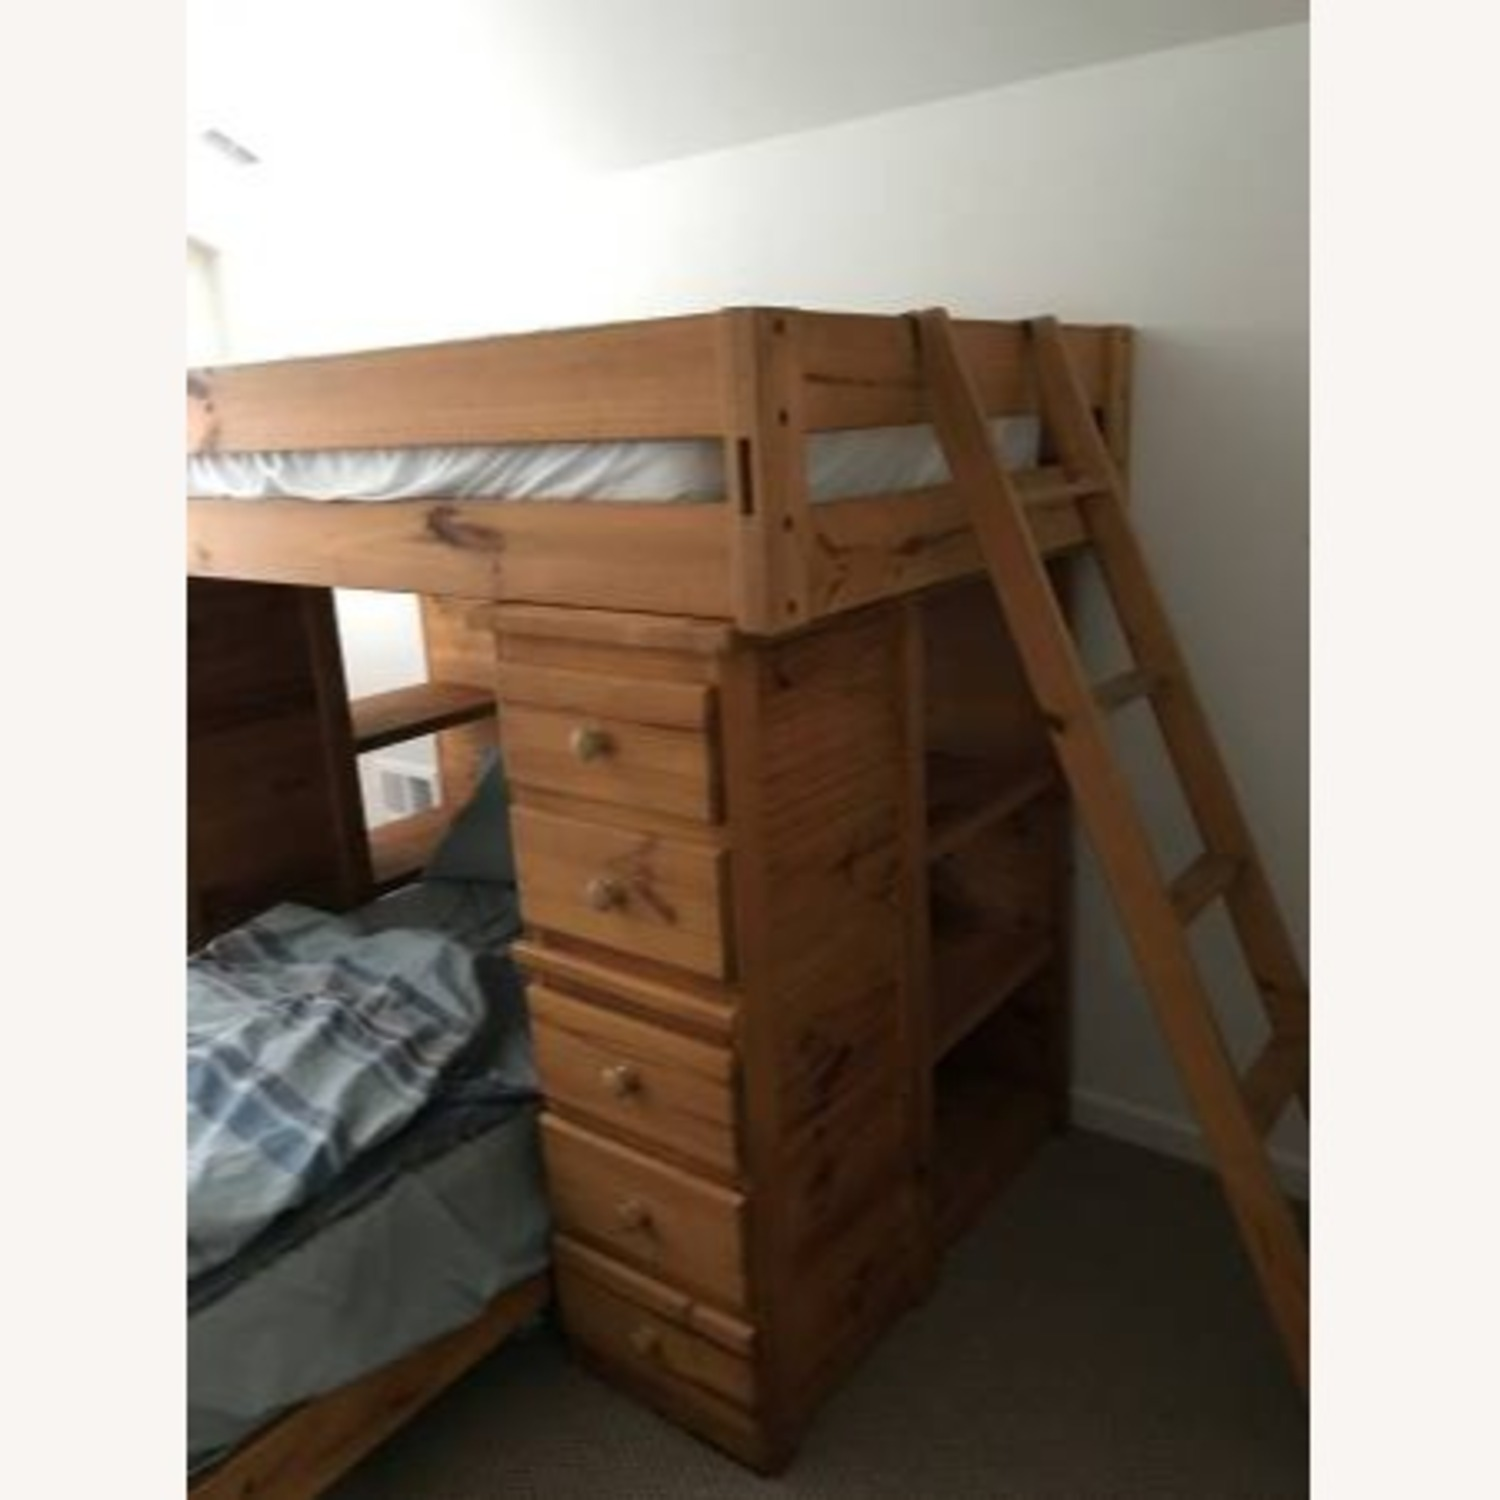 T Twin Bunk Beds - w Dresser Drawers Bookshelves - image-3